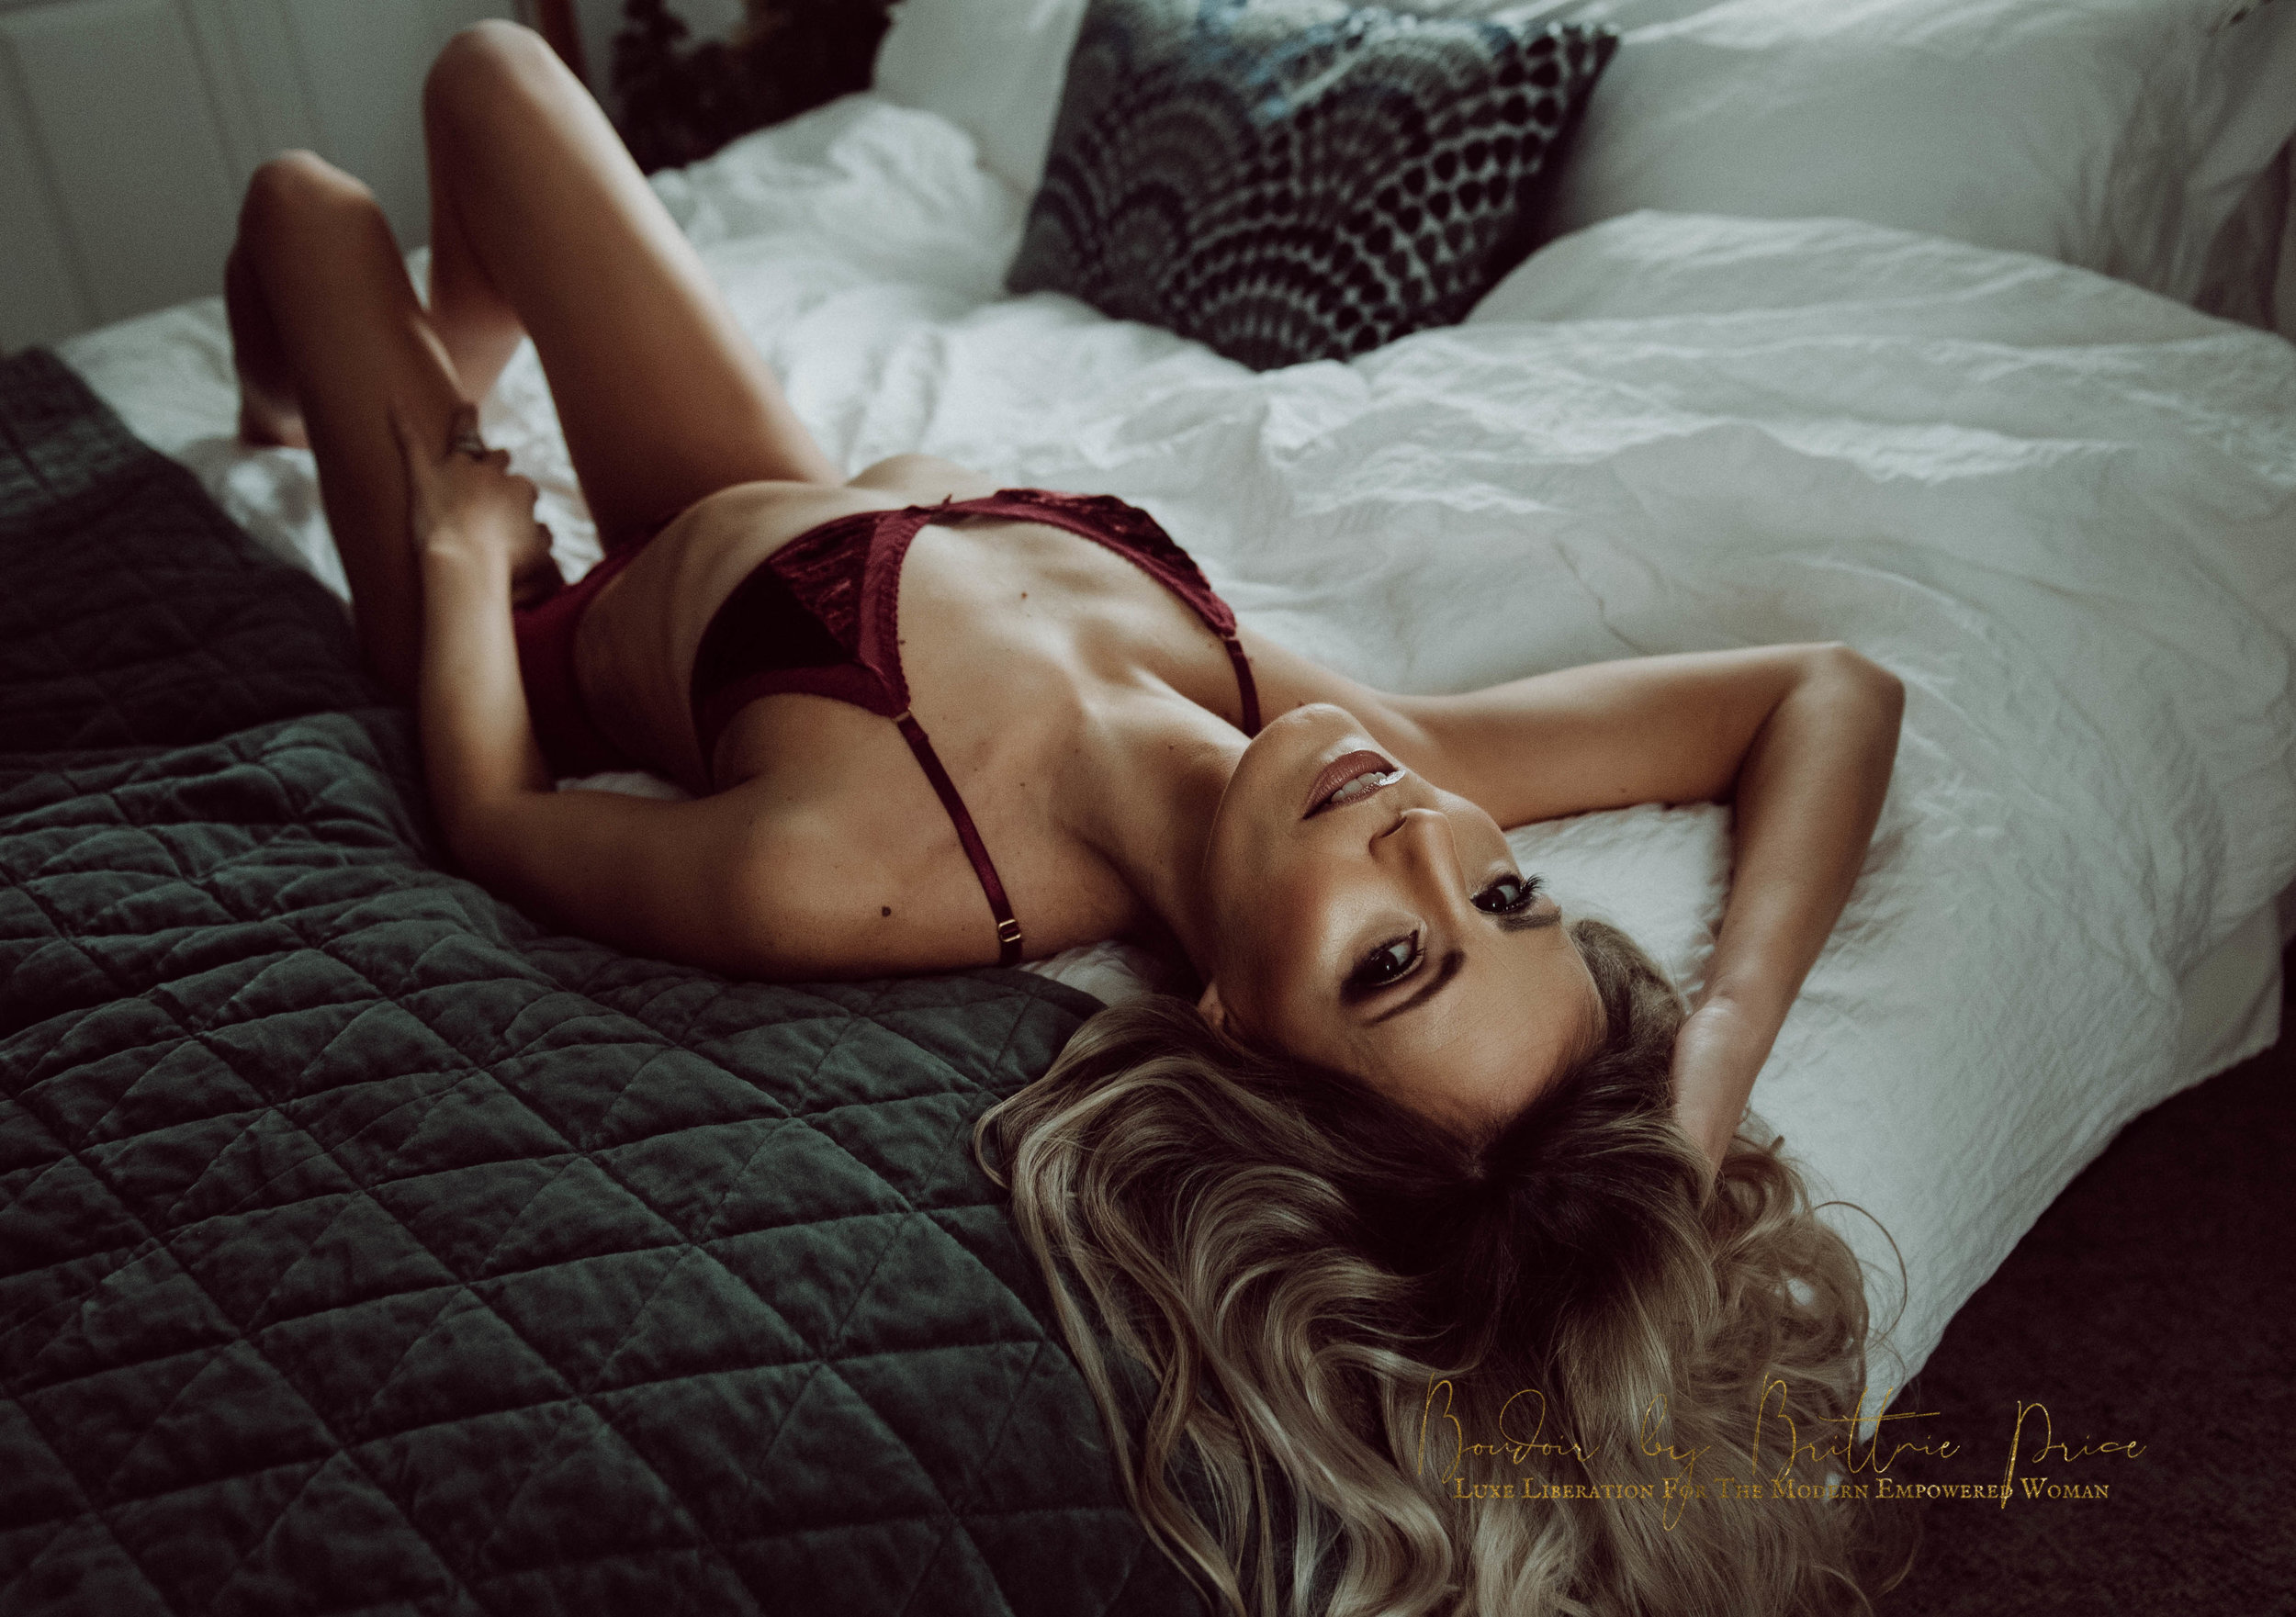 Blonde woman laying on bed in red bra and underwear boudoir photography new york studio